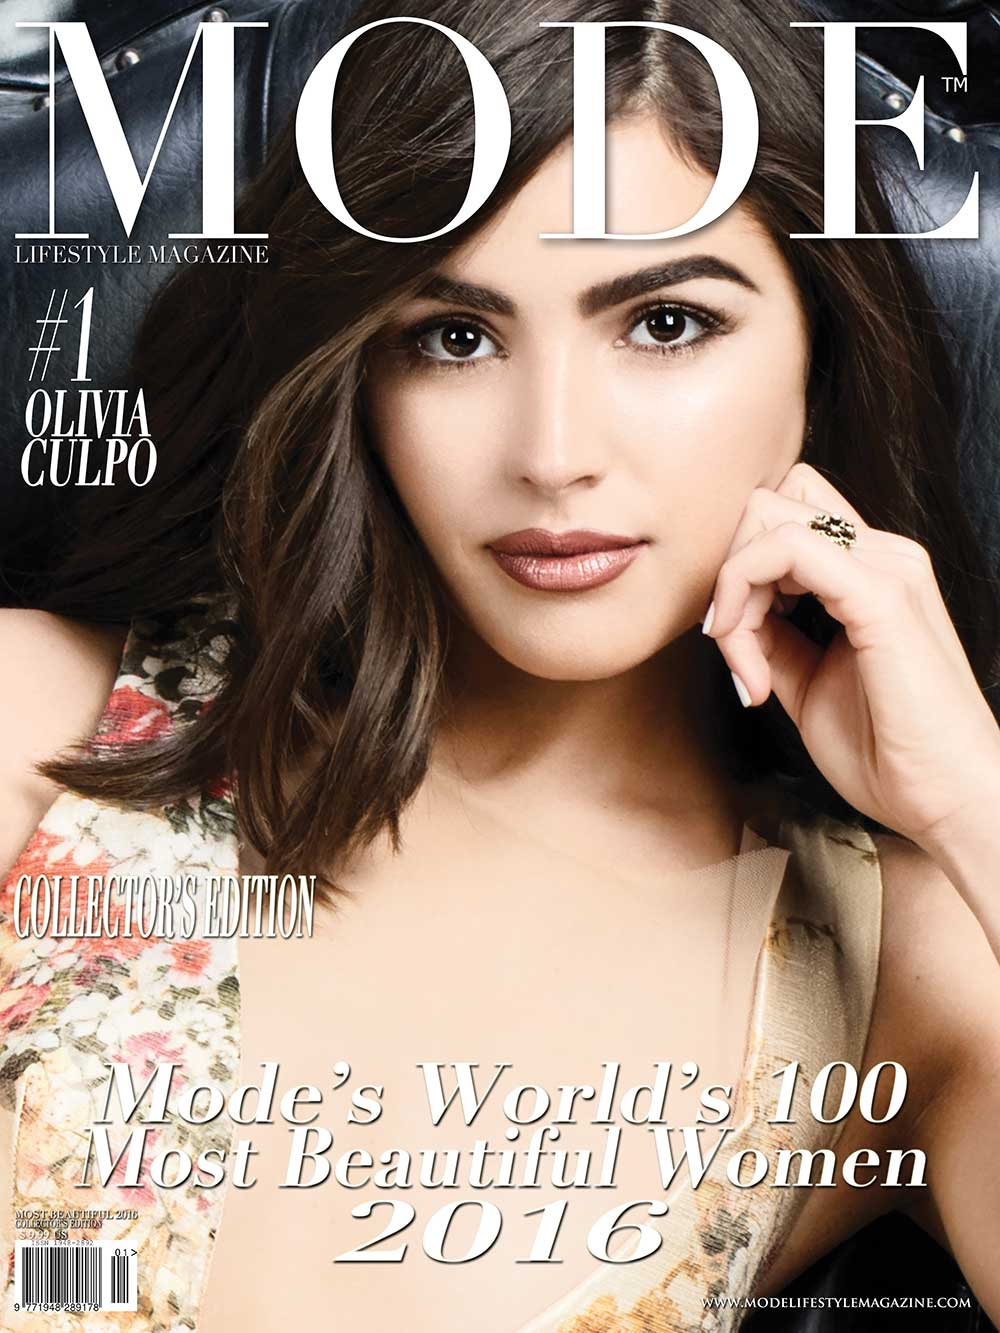 COVER - #1 Olivia Culpo - MODE'S WORLD'S 100 MOST BEAUTIFUL WOMEN 2016. Photo by Terry Check